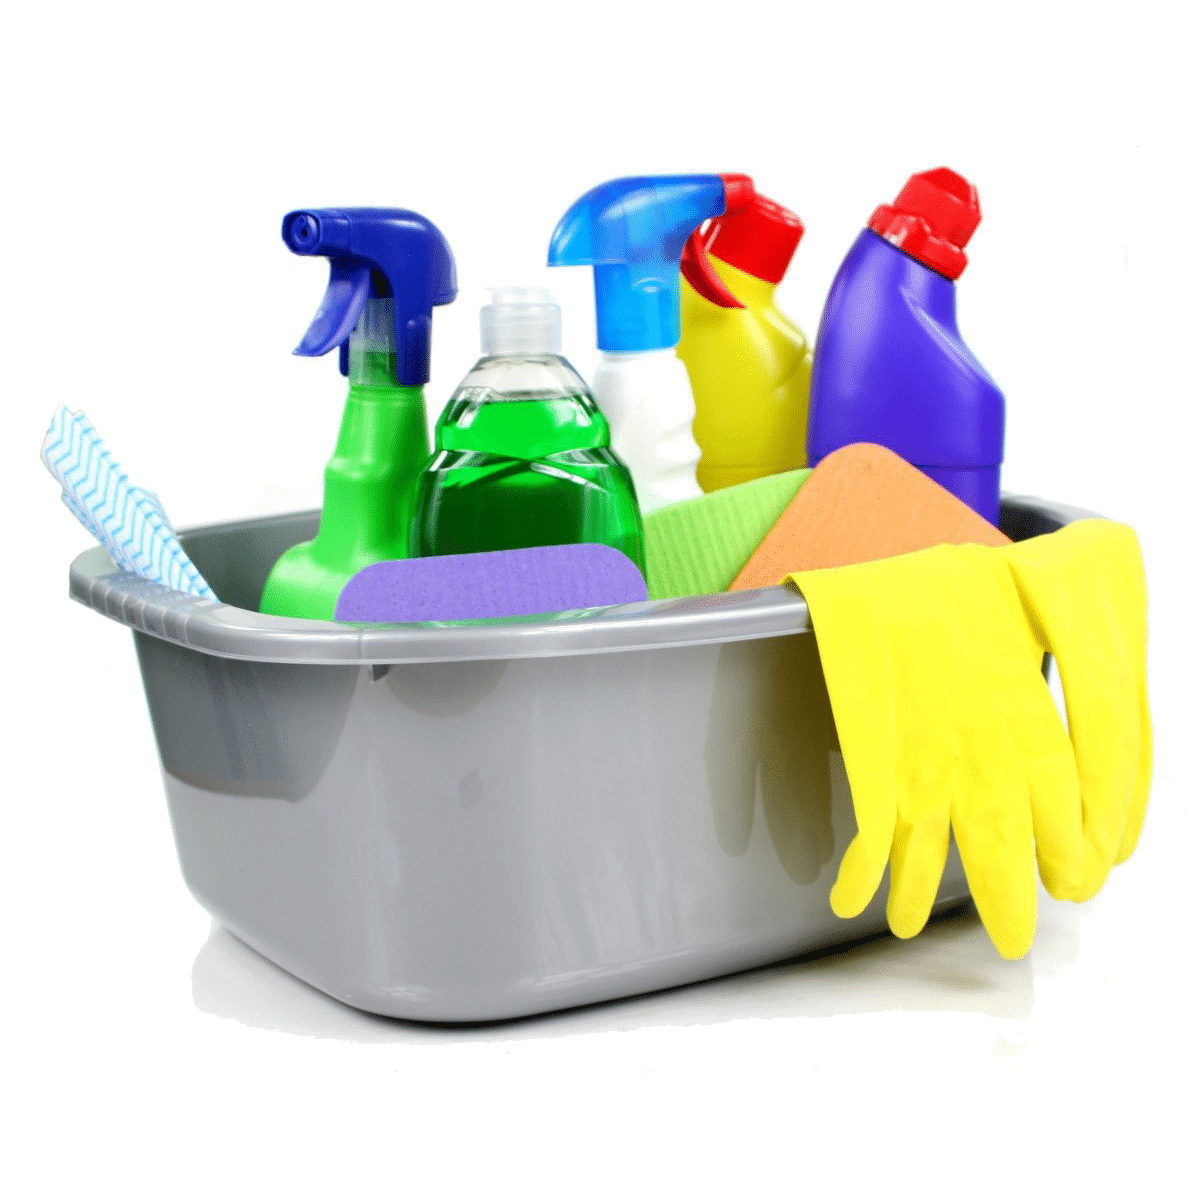 Cleaning products for use with toilet partitions.